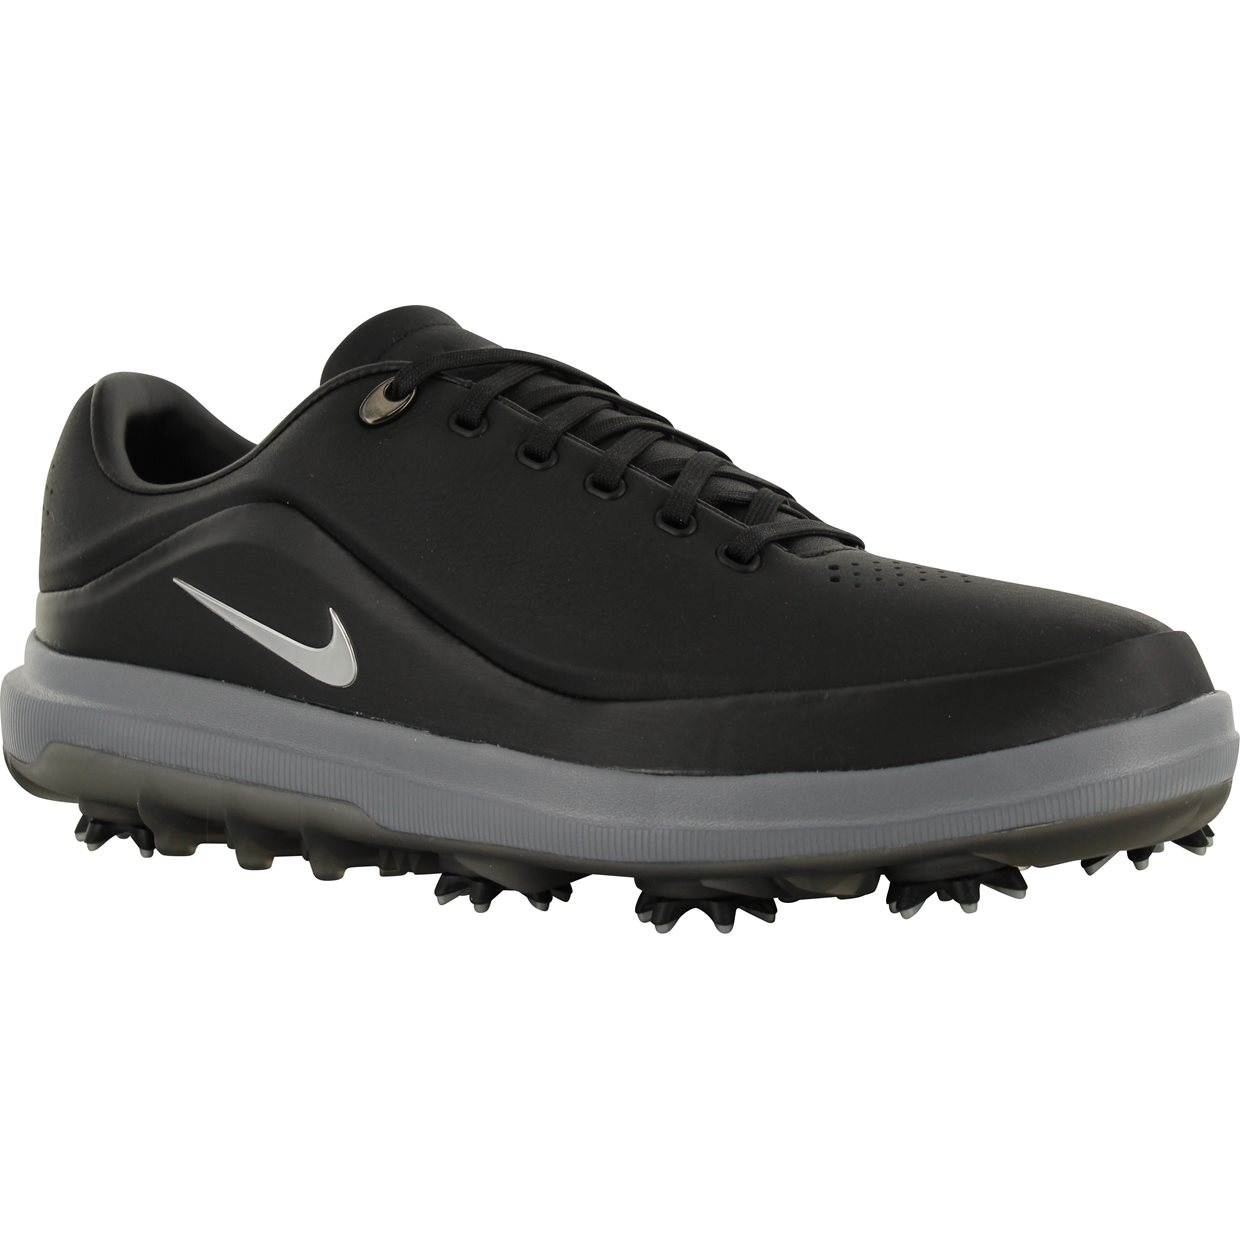 63e9db238 Nike Air Zoom Precision Golf Shoe in Black Metallic Silver Red